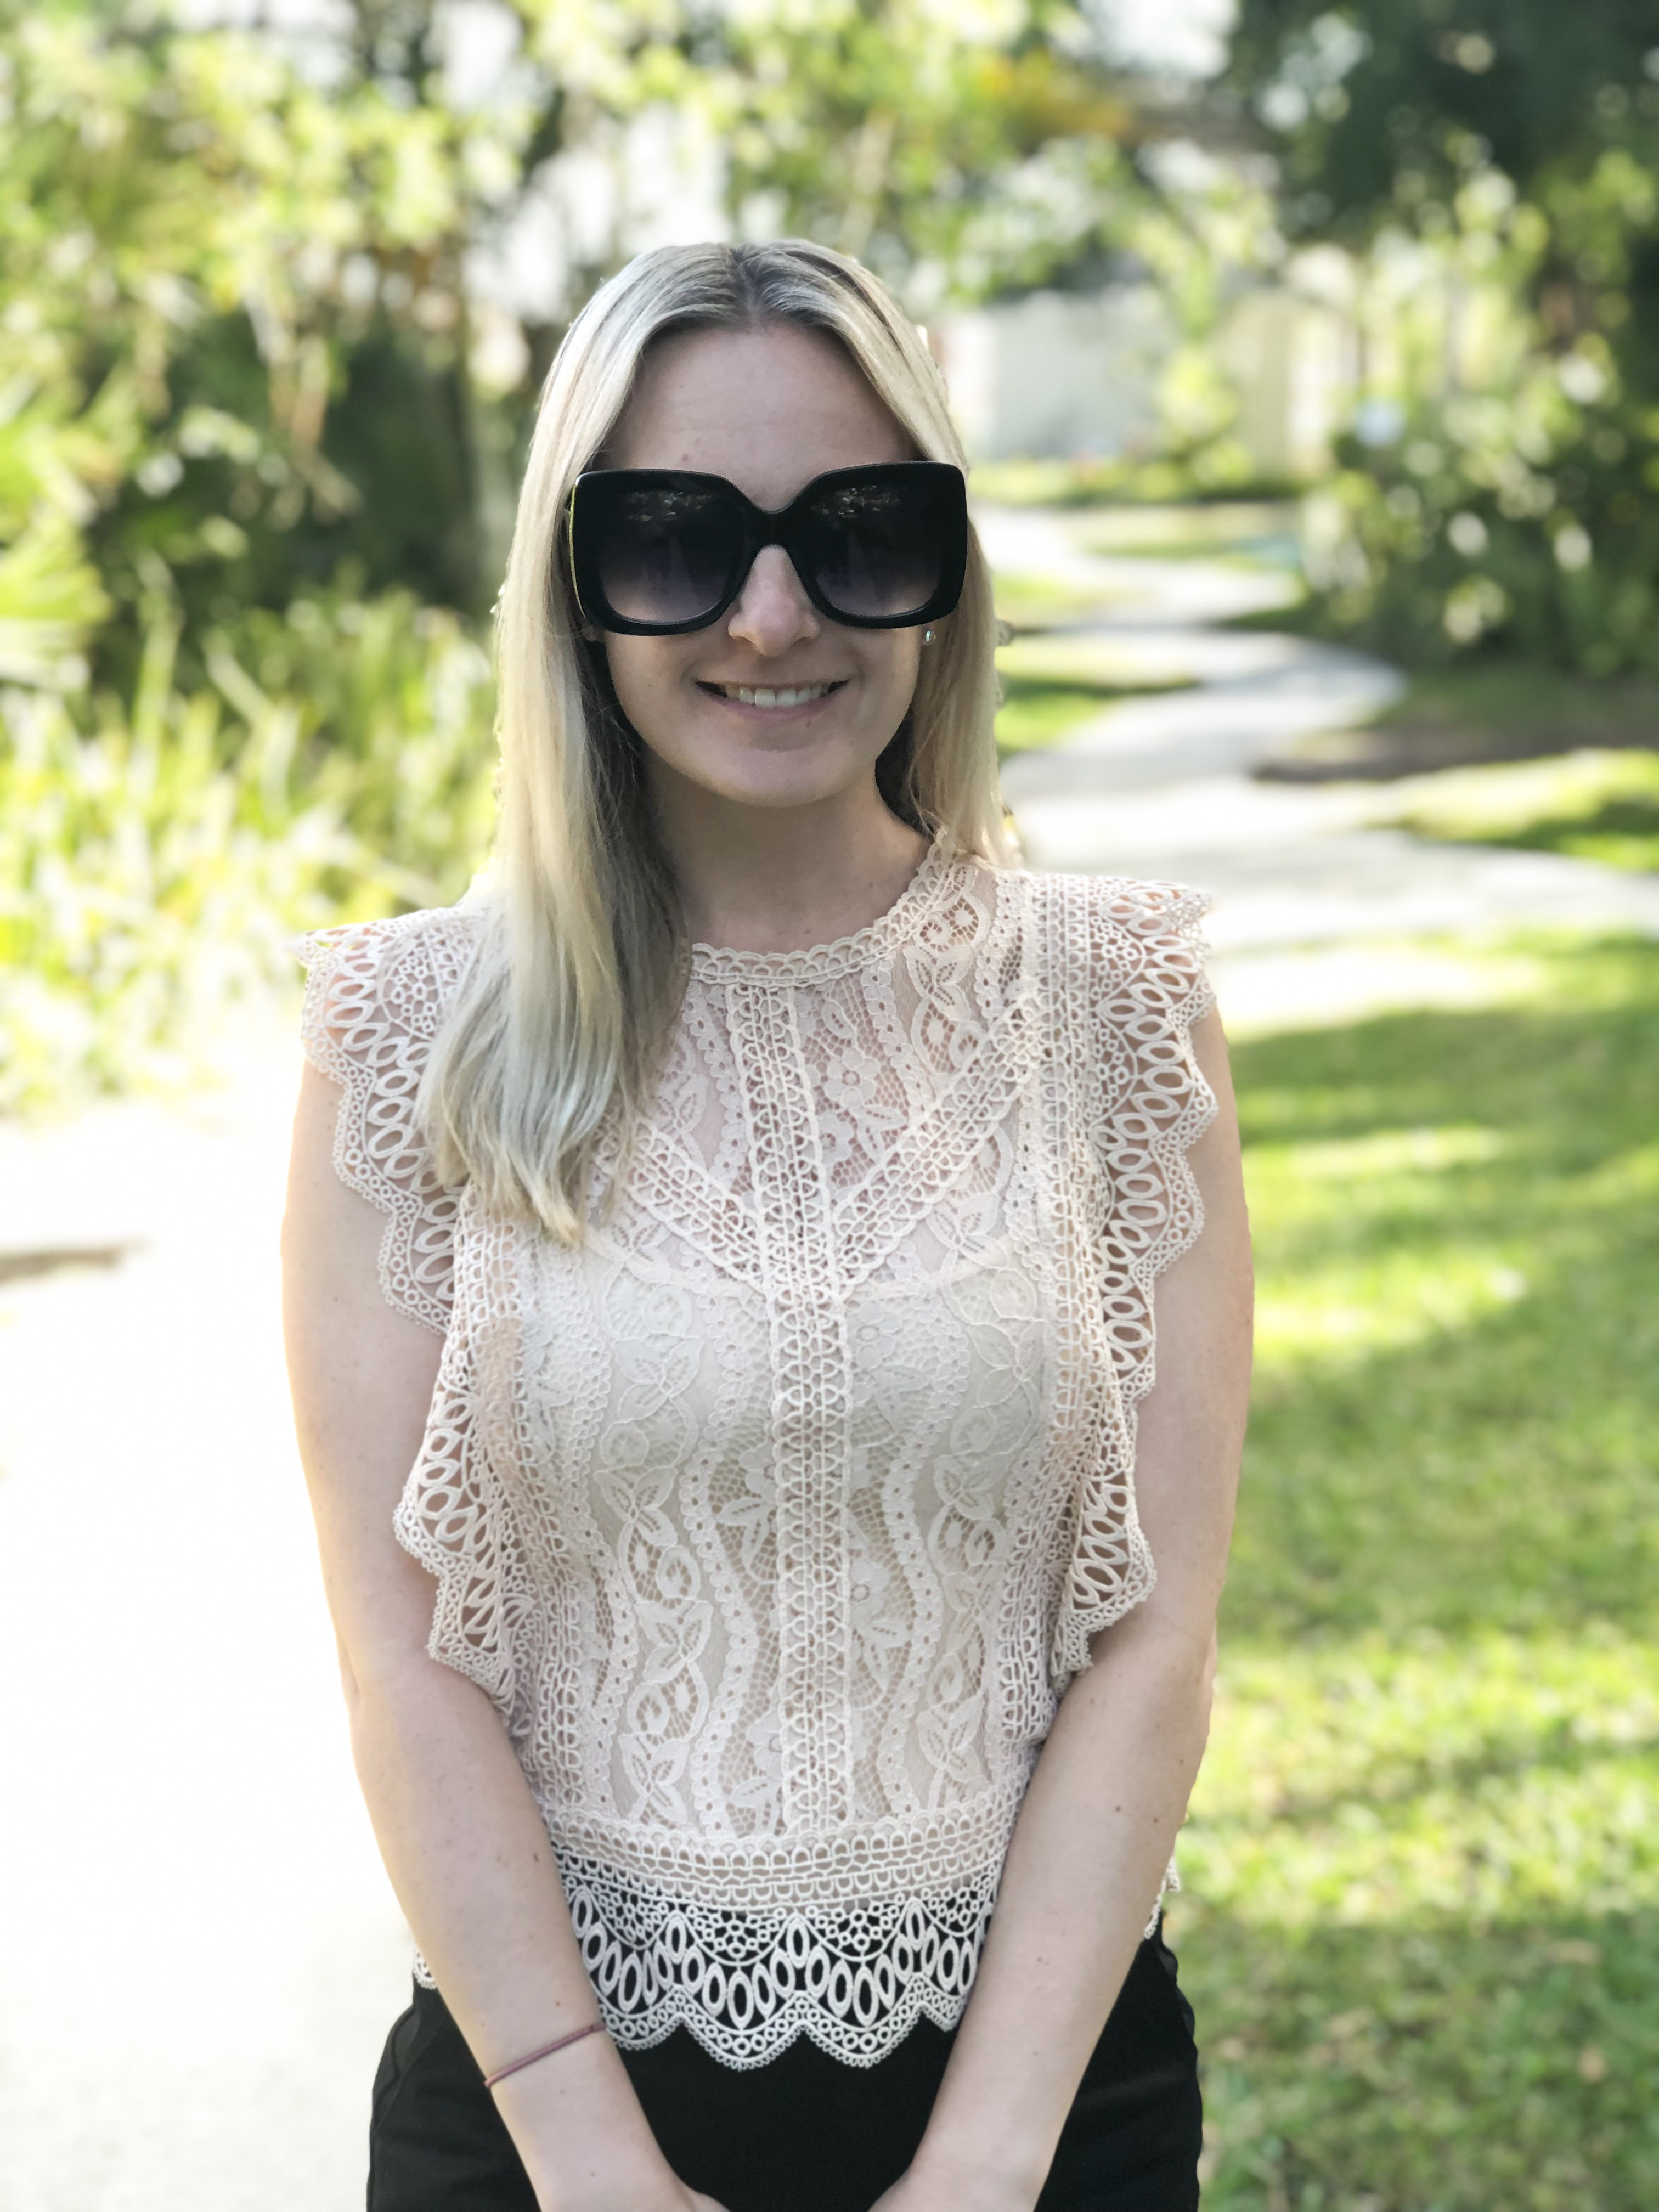 Lace Top from Zara on Livin' Life with Style